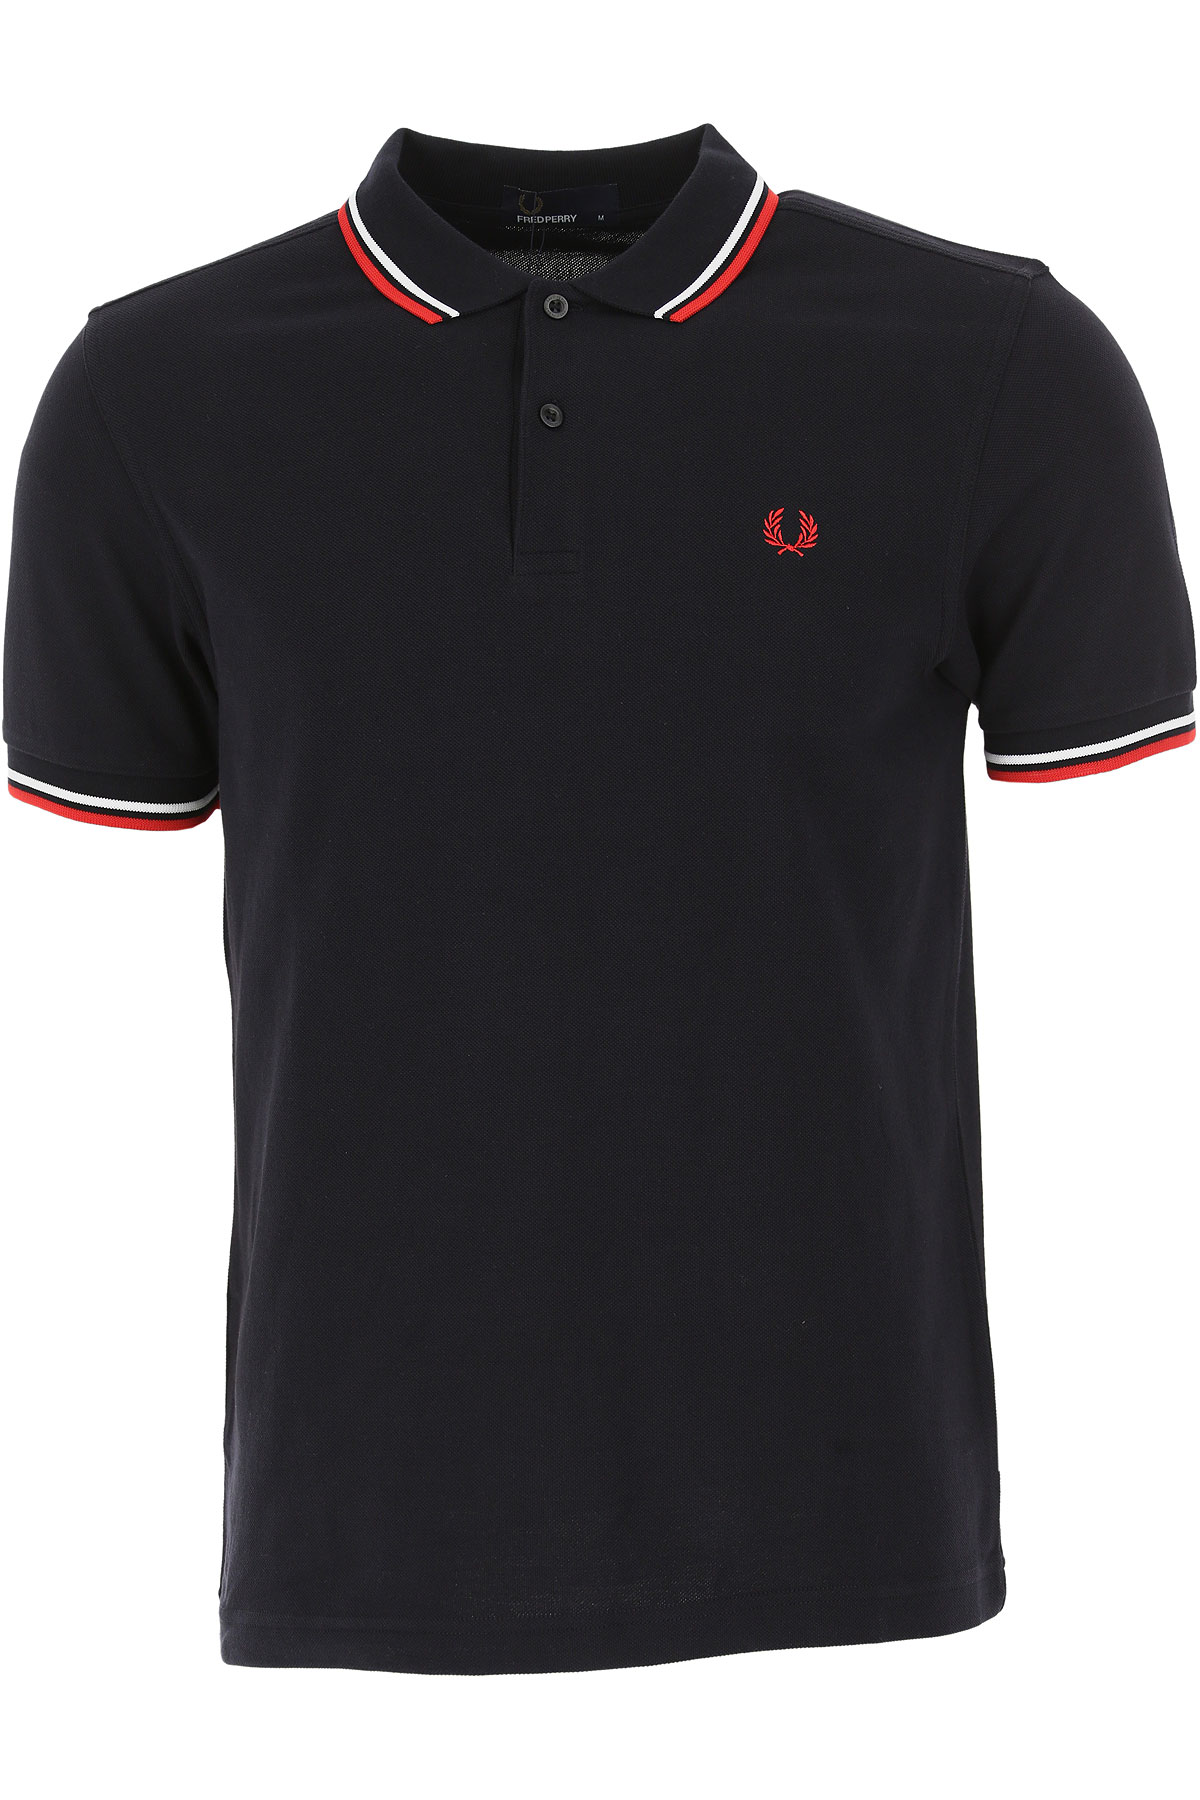 Fred Perry Polo Shirt for Men On Sale, Black, Cotton, 2019, L S XL XS XXL